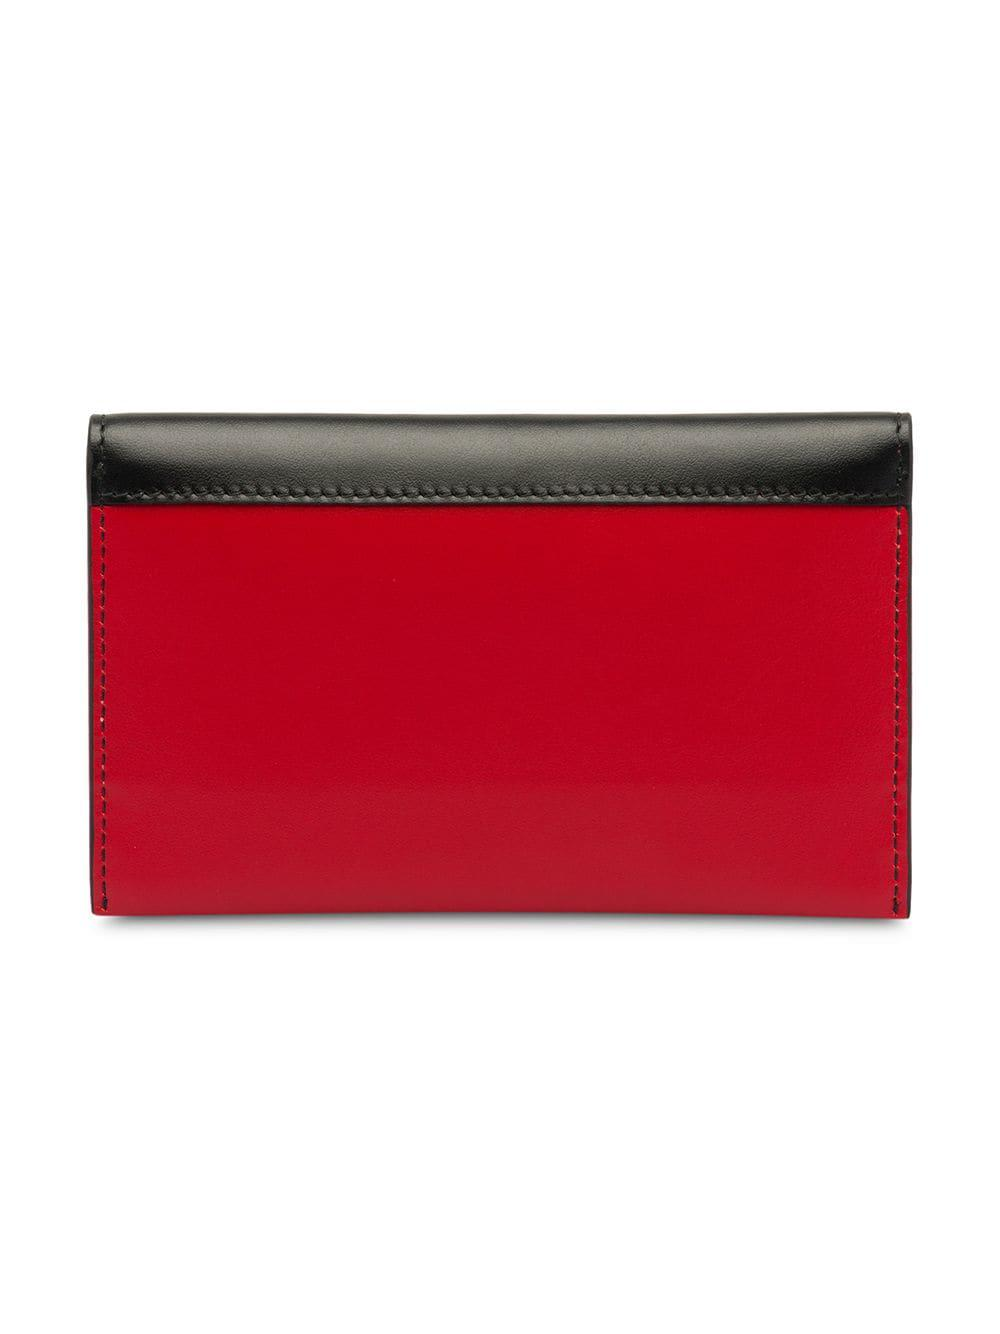 3362753db40f Prada Sybille Two-tone Leather Card Holder in Red - Lyst